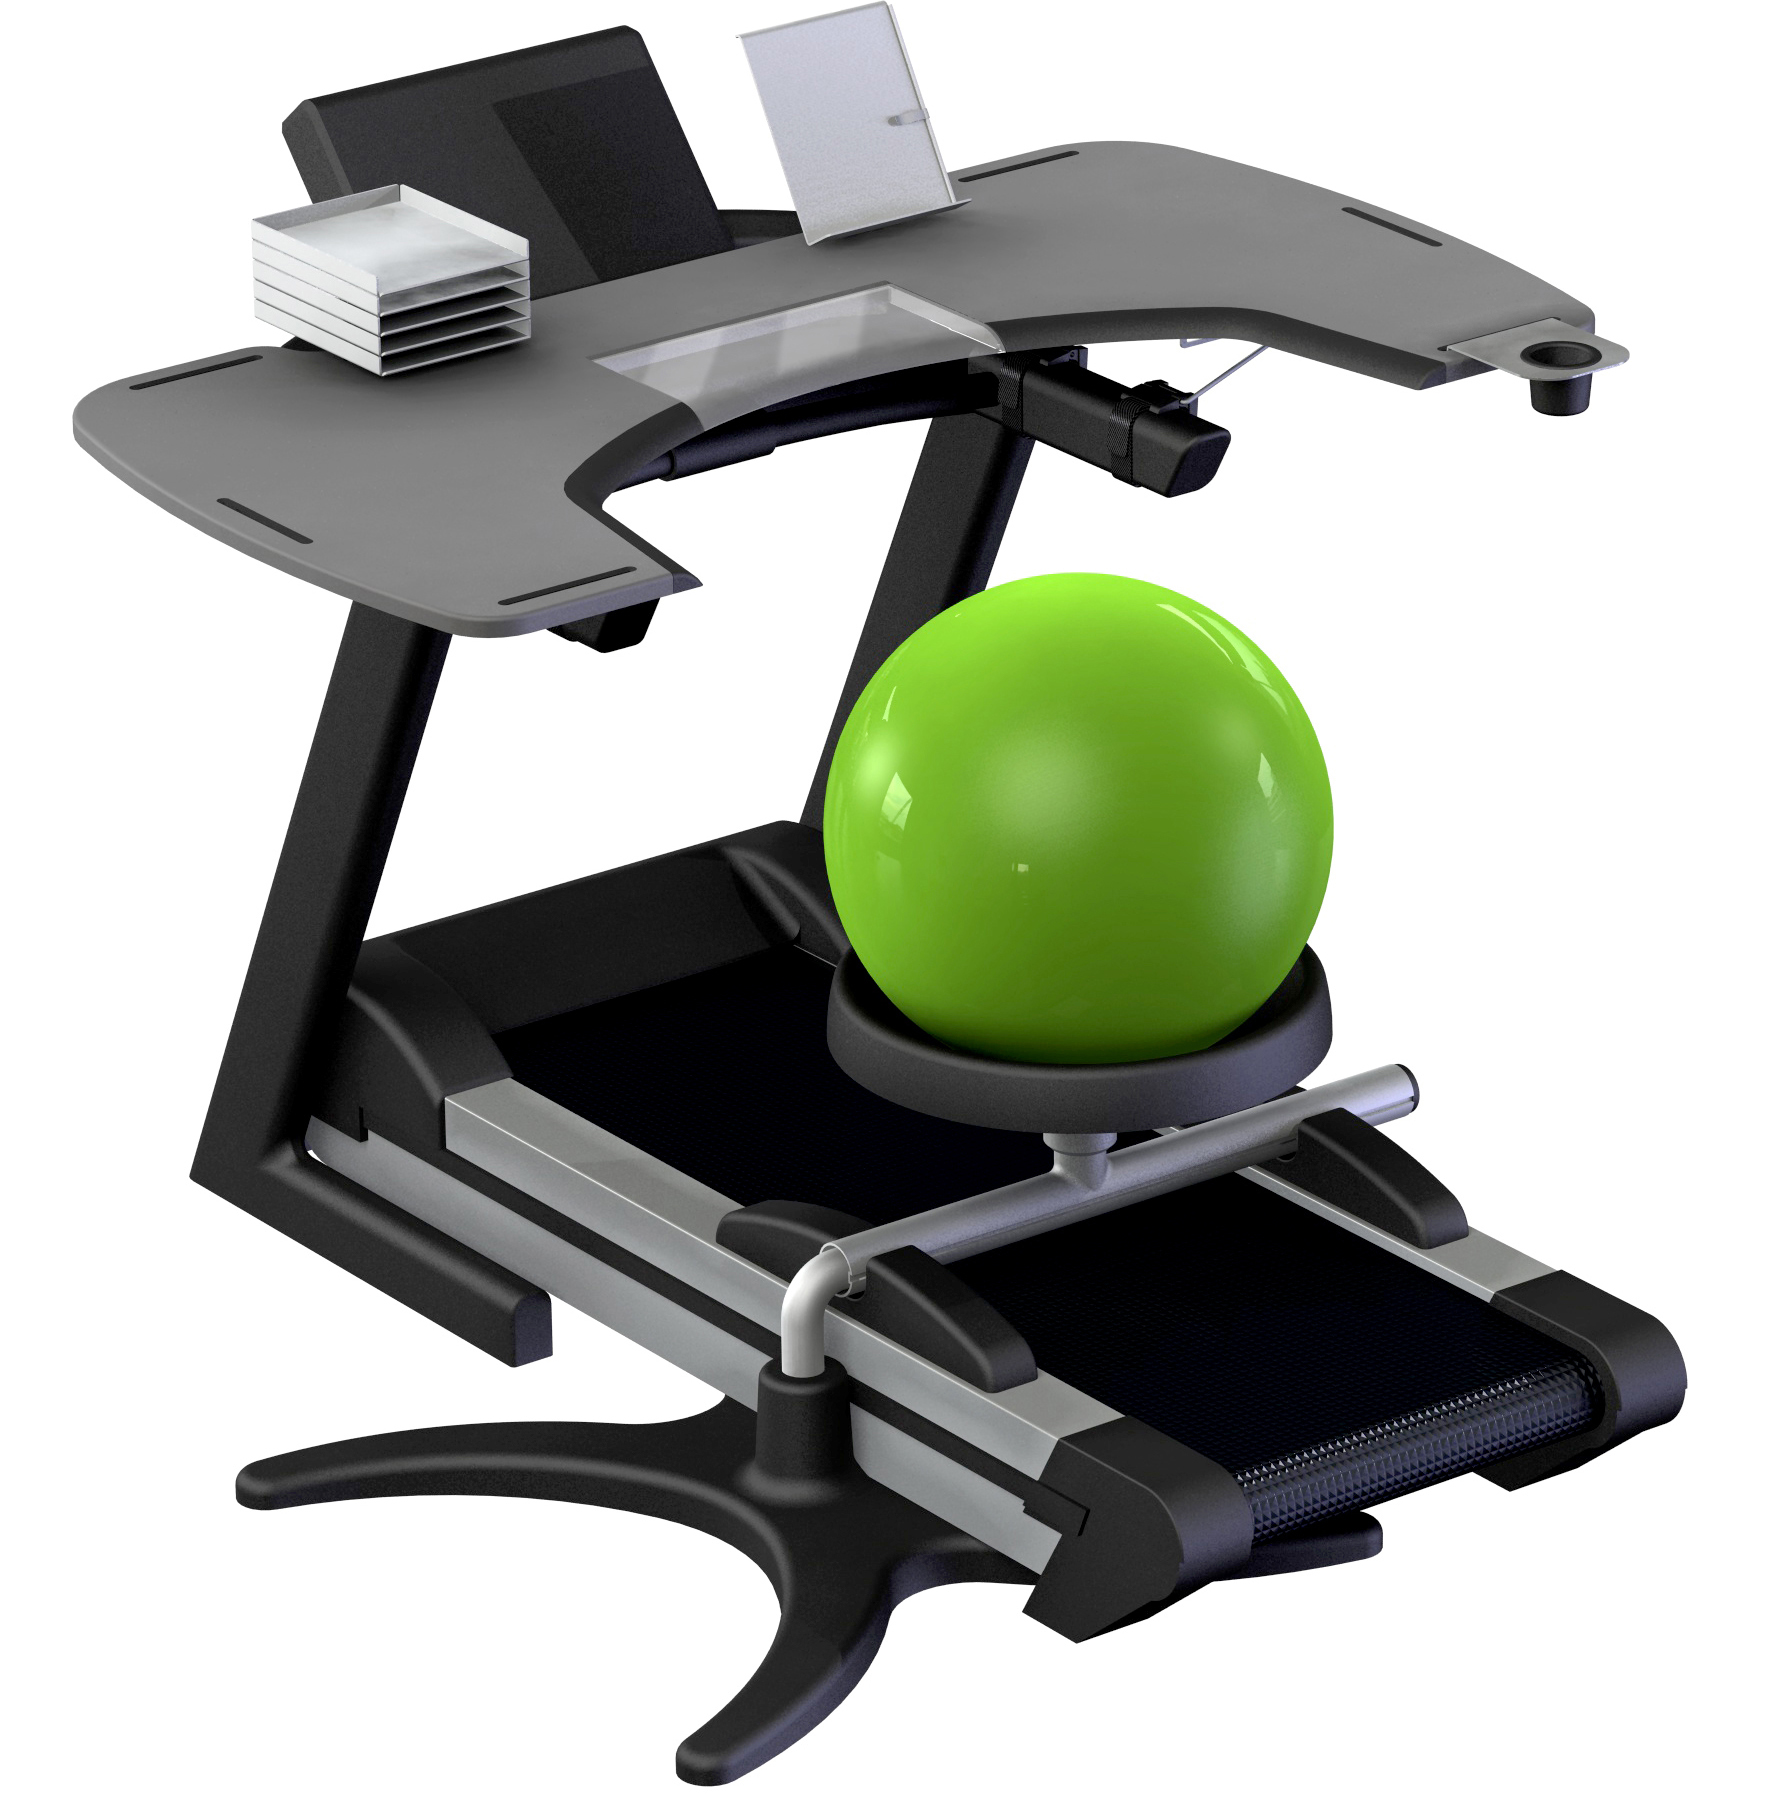 Yoga Ball Desk Chair Trekdesk Gears Up To Alleviate Stresses Of Today 39s